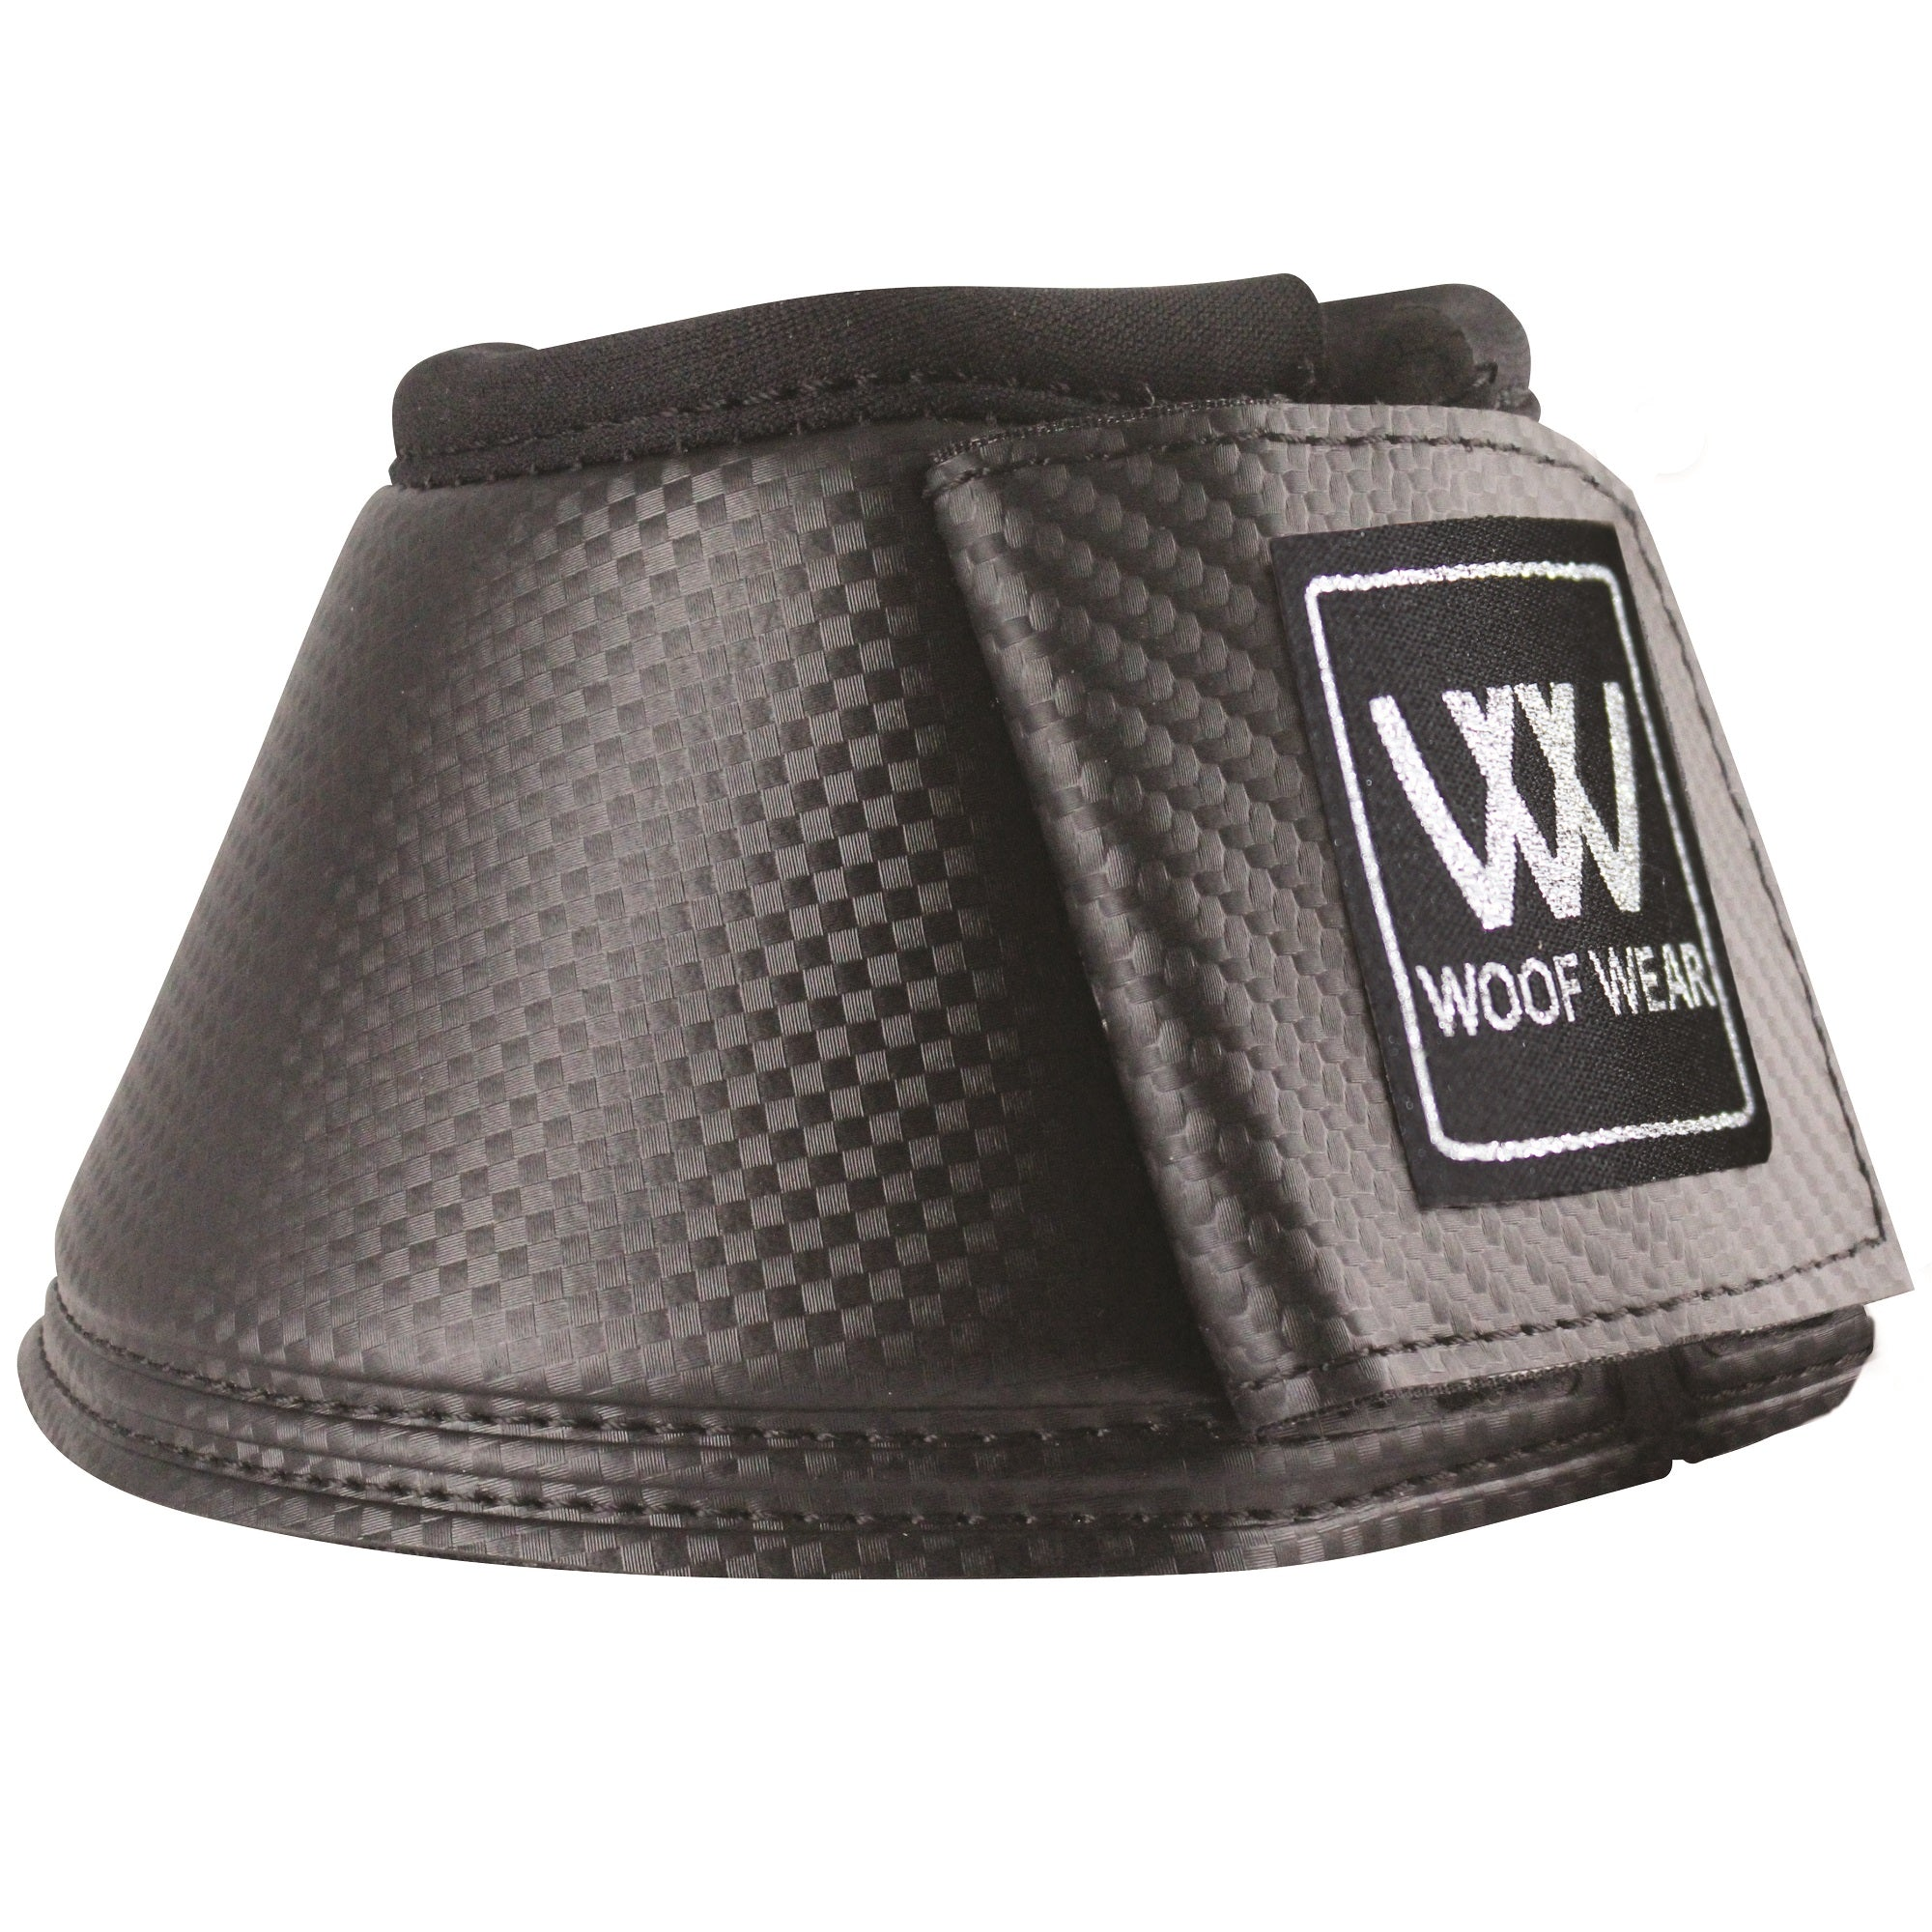 Woof Wear Pro Overreach Boot Tack - English Tack & Equipment Woof Wear Teskeys